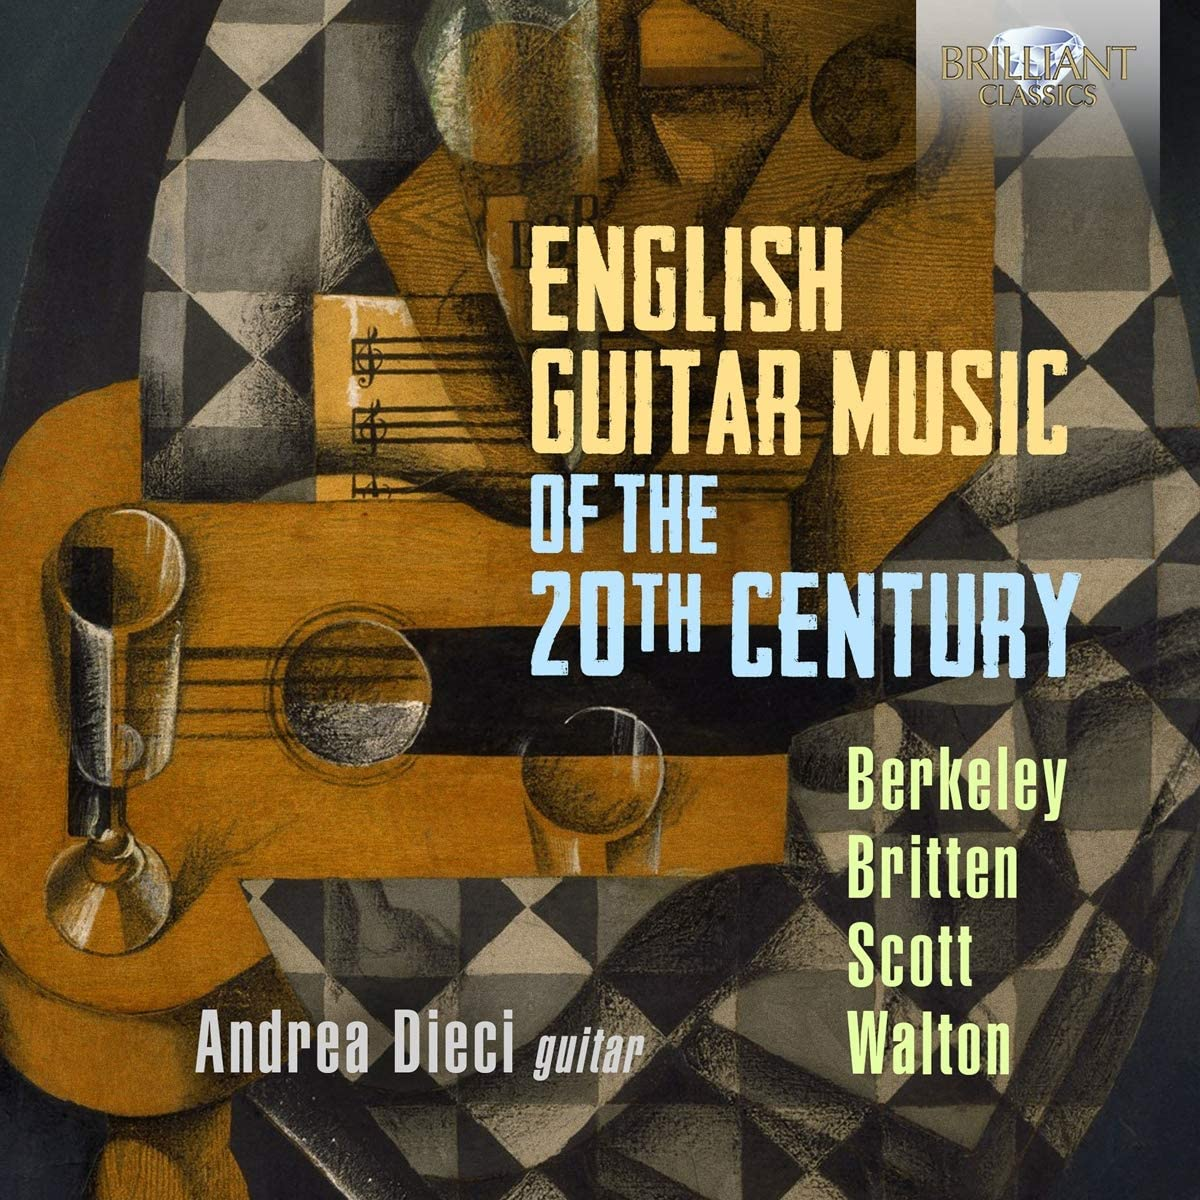 English Guitar Music of the 20th Century, Andrea Dieci